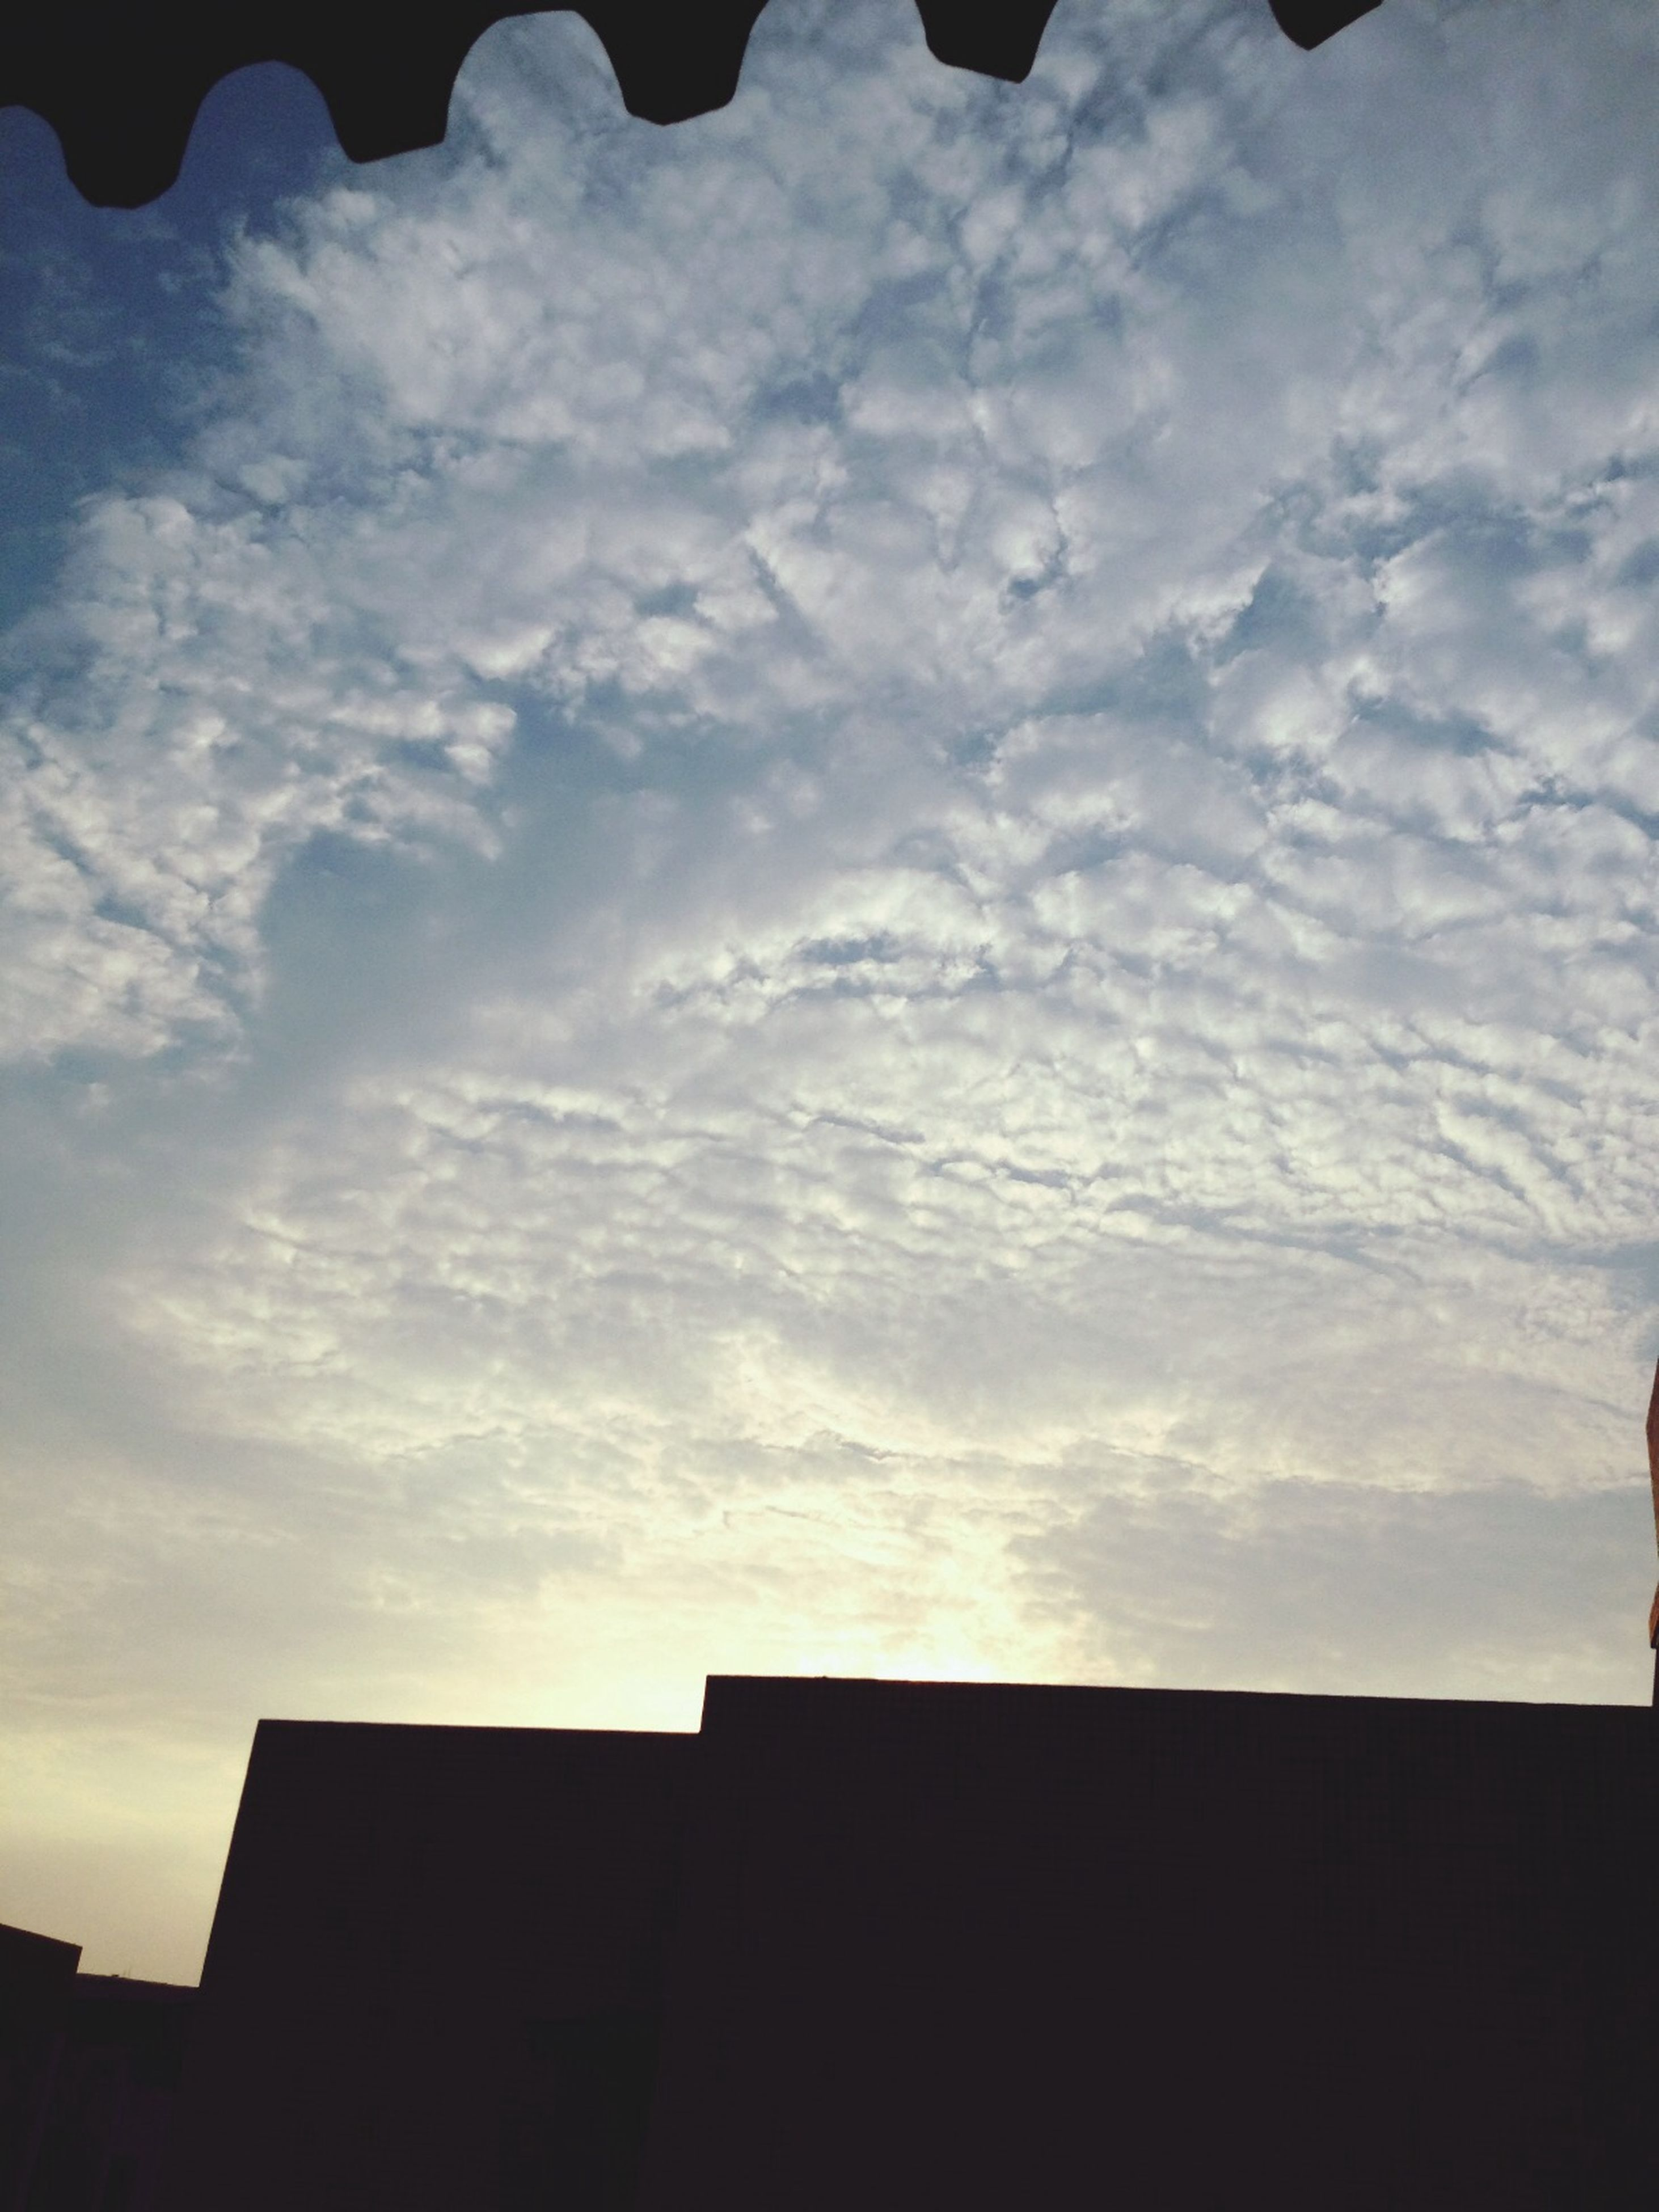 sky, silhouette, architecture, built structure, low angle view, building exterior, cloud - sky, cloud, sunset, cloudy, house, high section, nature, beauty in nature, outdoors, building, no people, residential structure, dusk, scenics